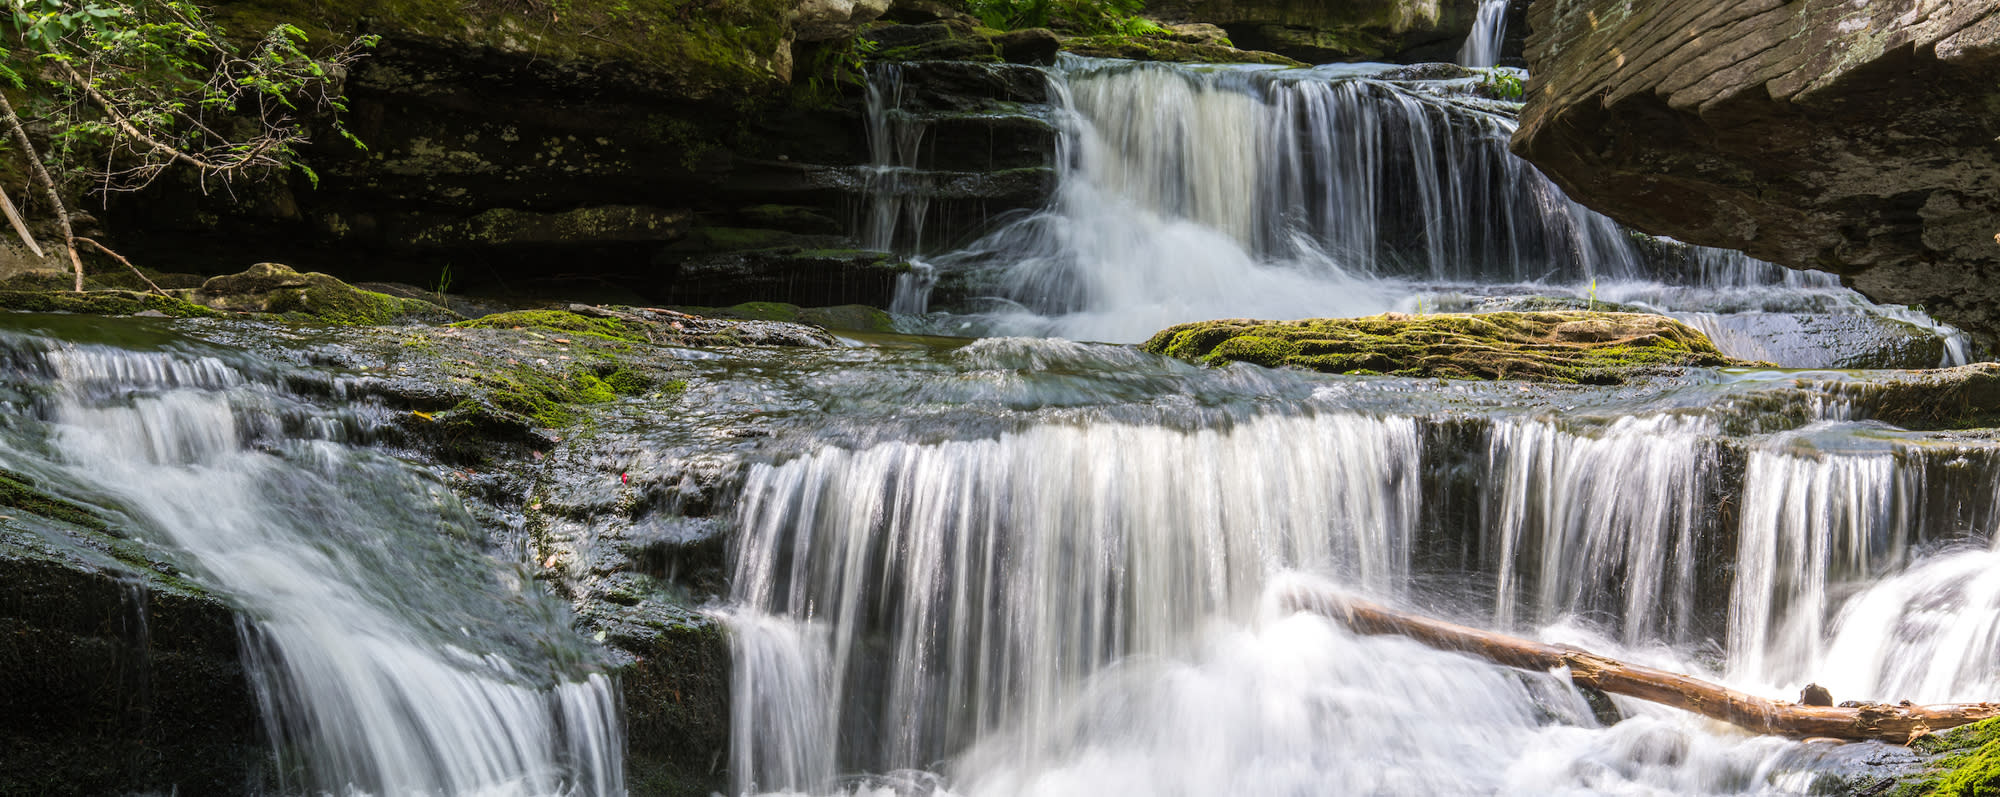 A photo of water cascading down Vernooy Kill Falls